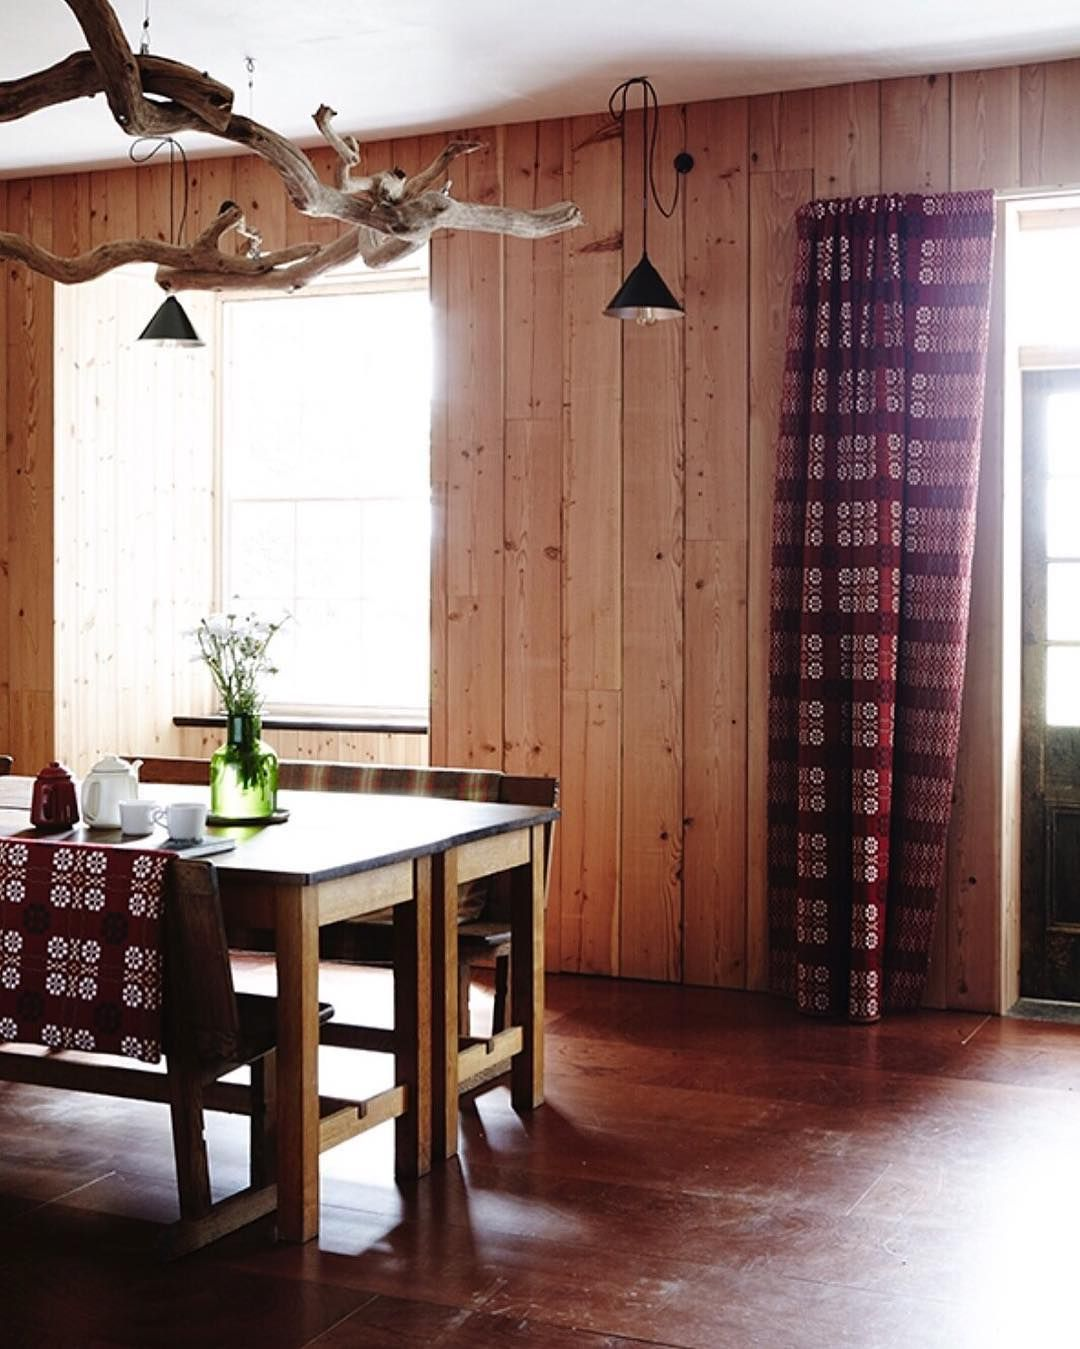 Time For Tea #fforestfarmhouse By @pennywincer For Country Living Modern  Rustic Magazine #fforest